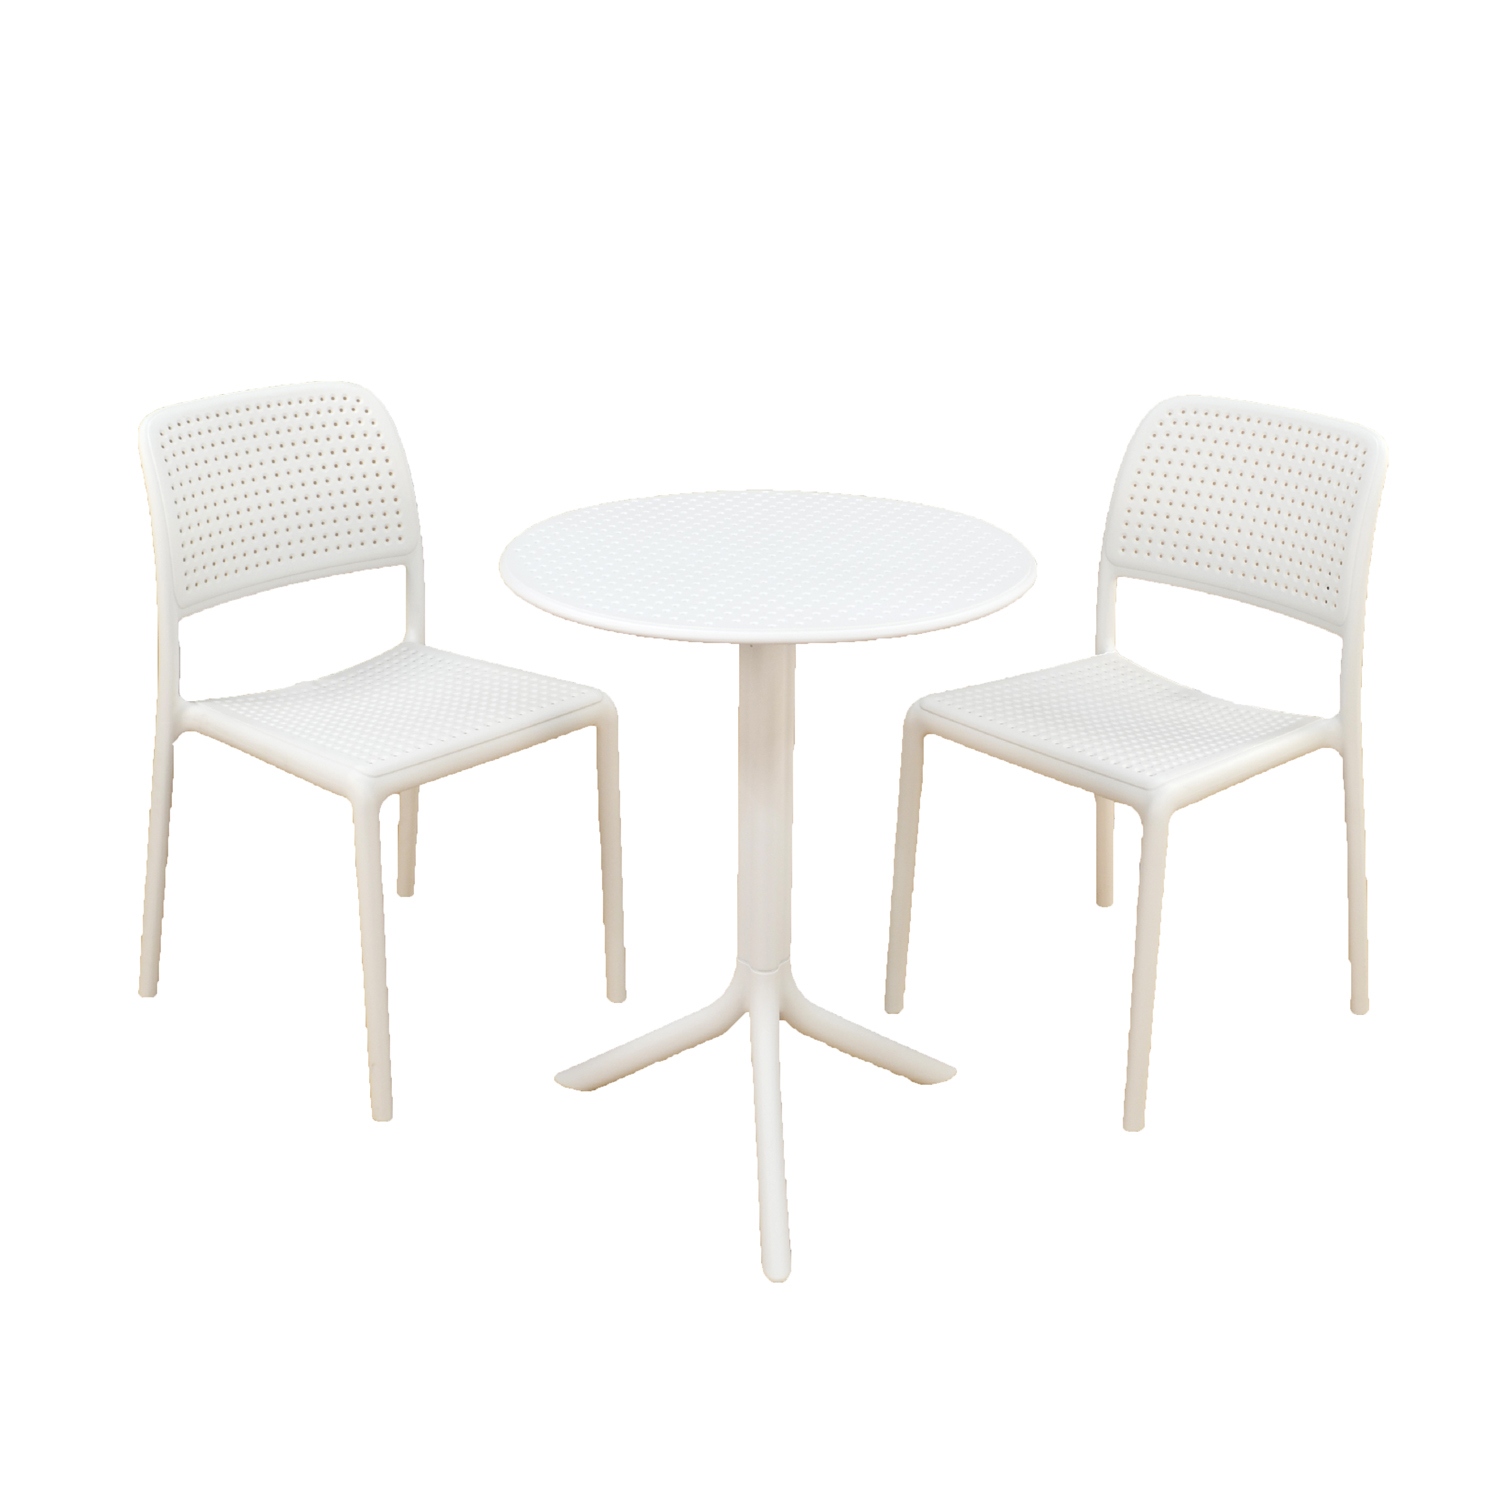 Step Table & Bistrot Chair white